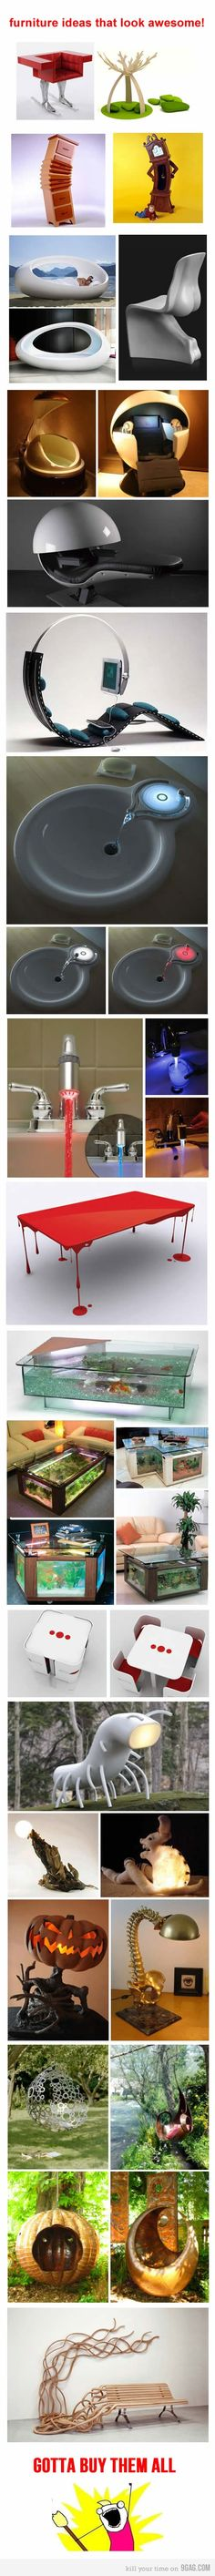 My favorite is that dripping red paint table.